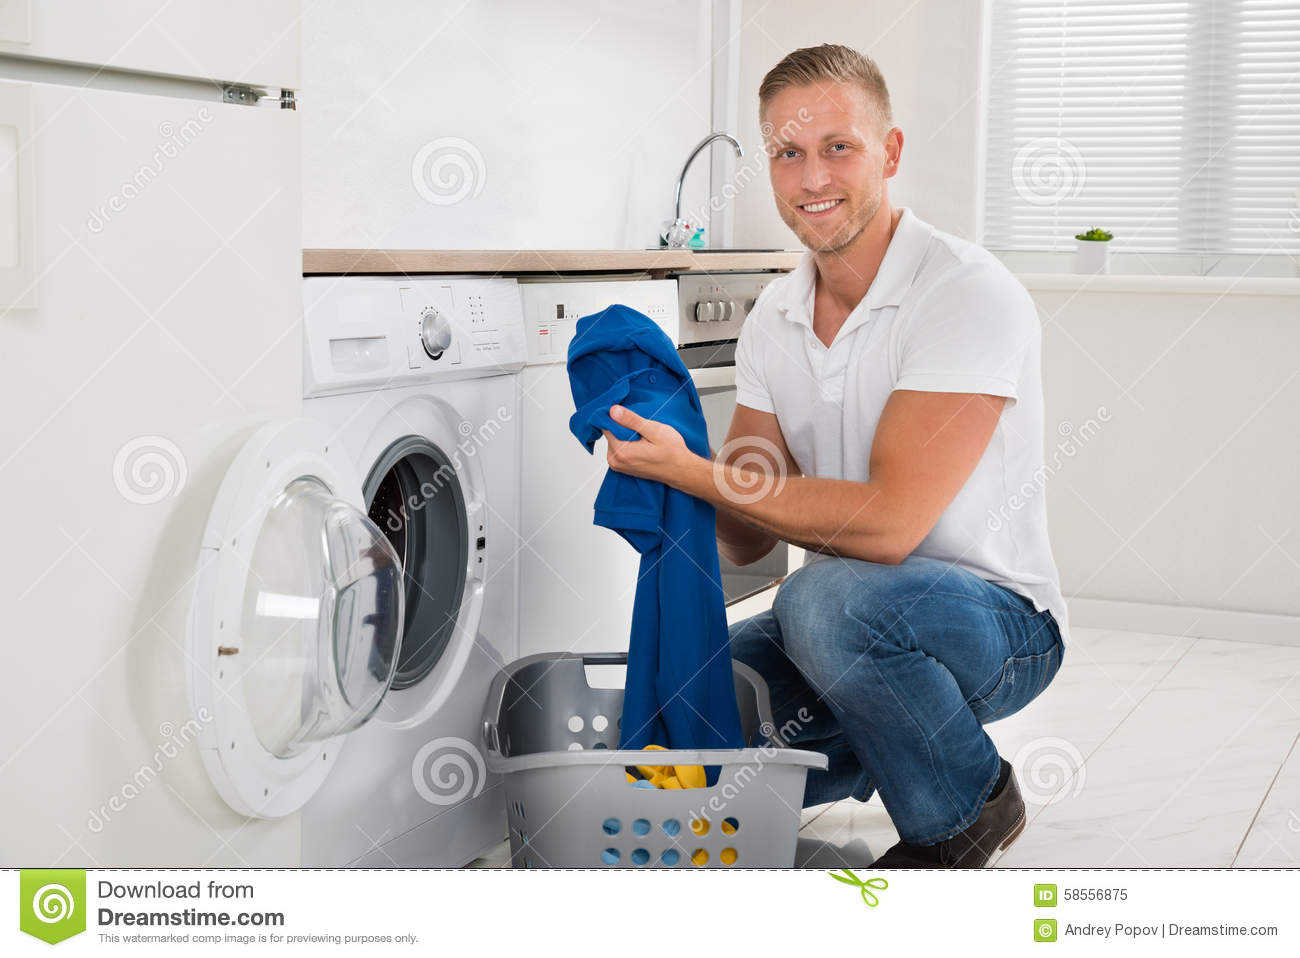 washing machine for clothes